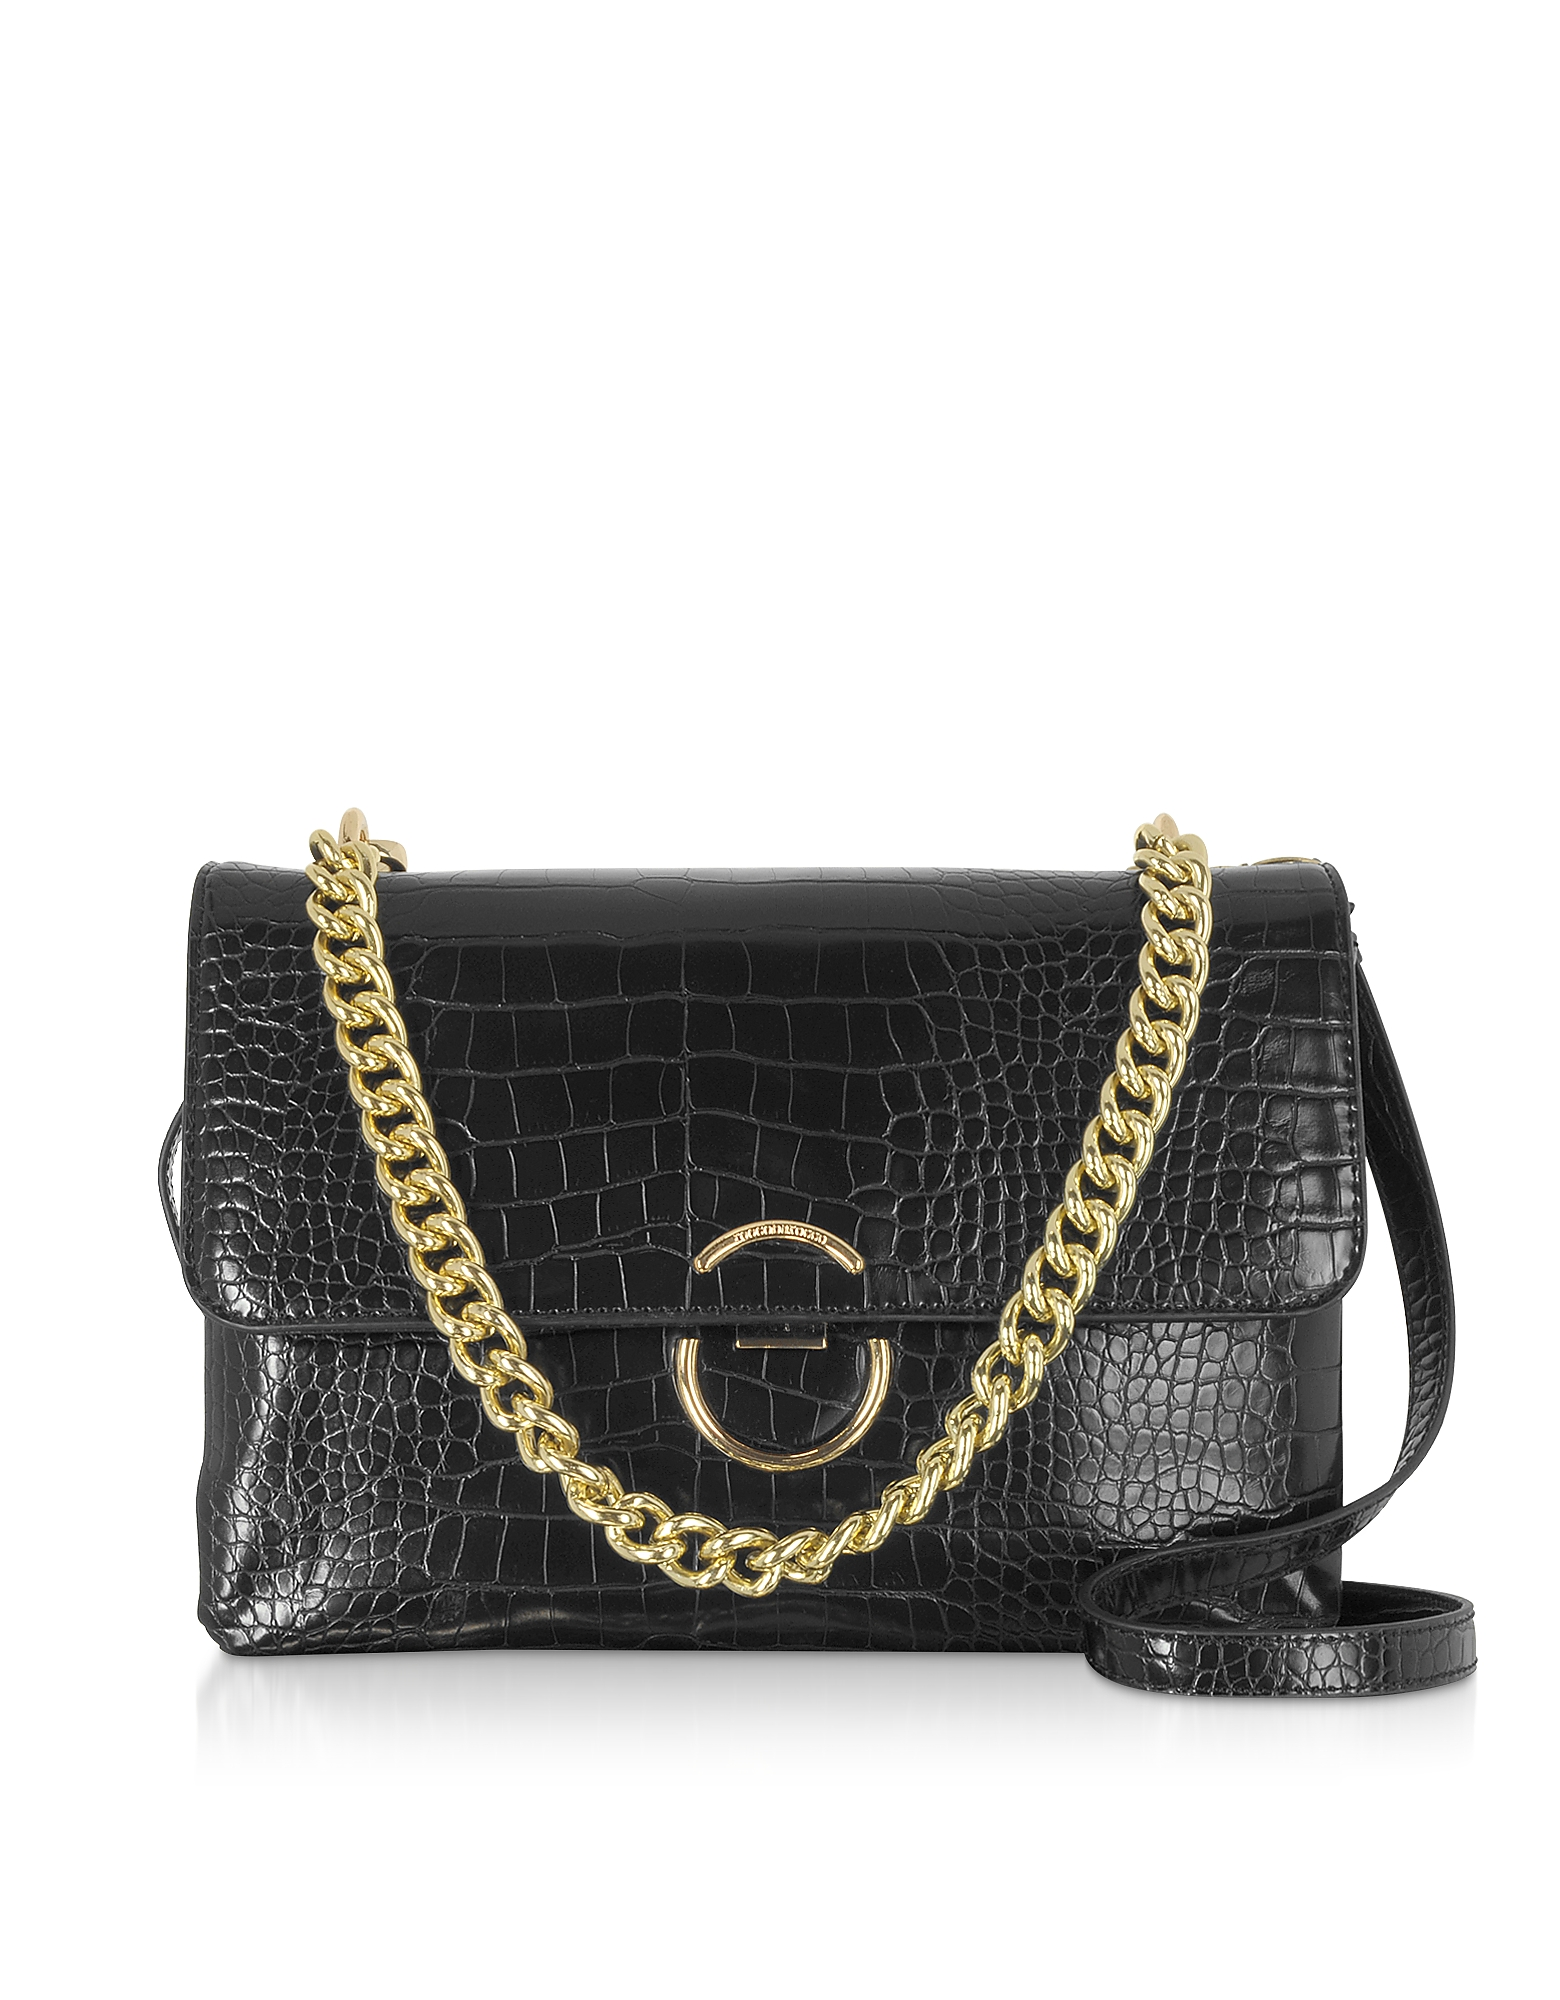 Roccobarocco Designer Handbags, Bento Croco Embossed Eco-Leather Shoulder Bag